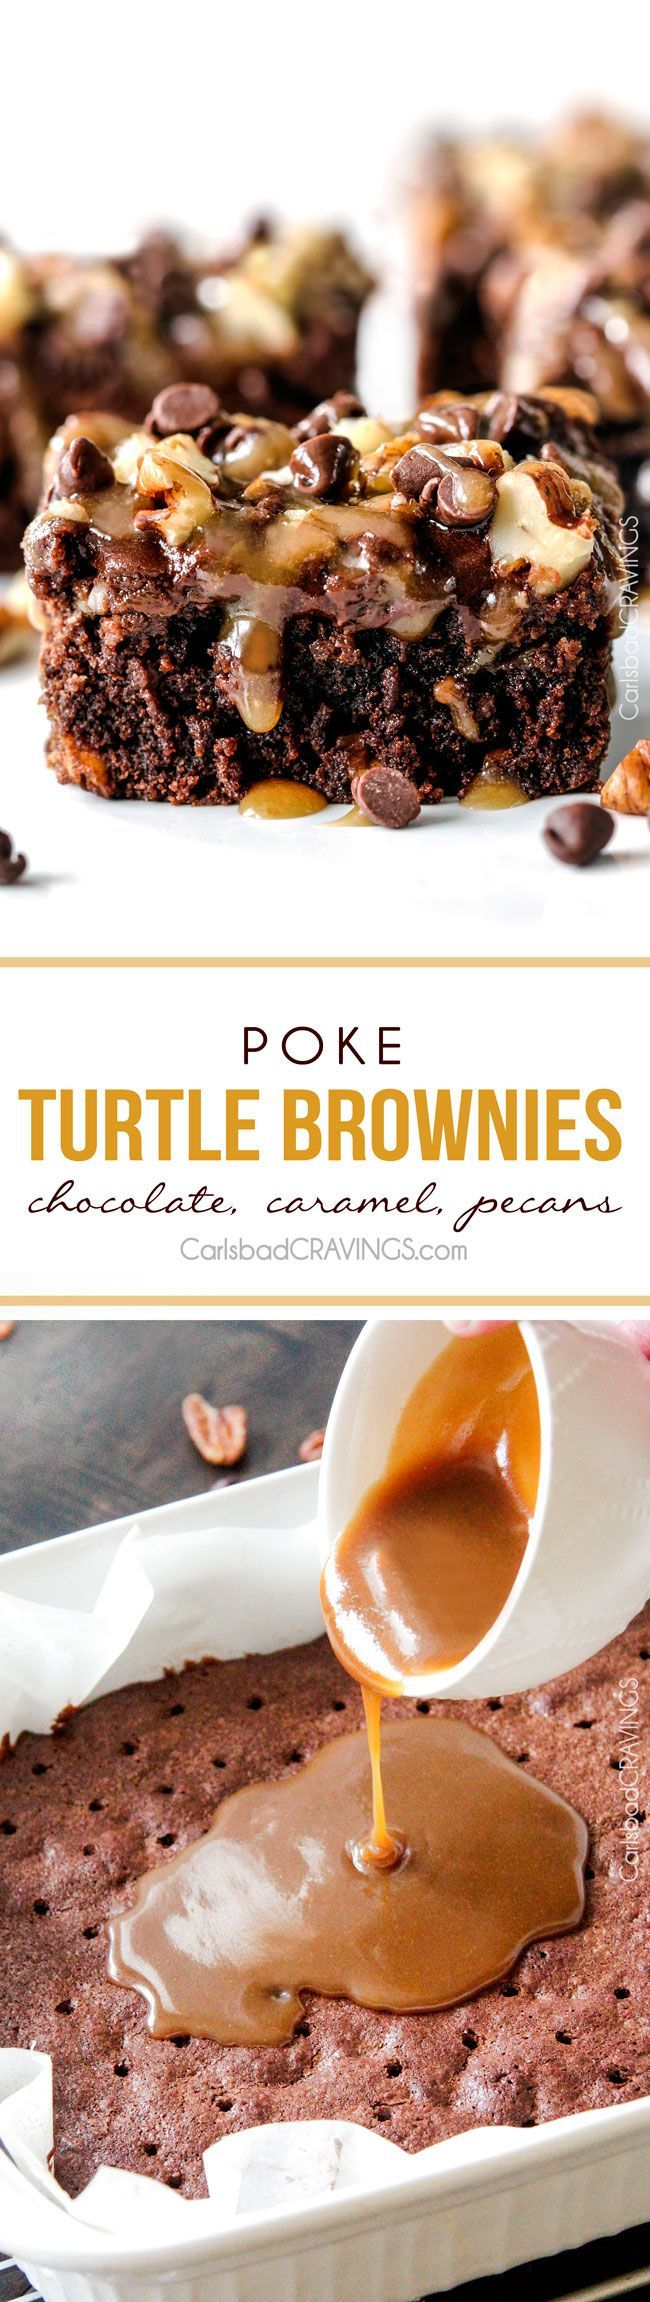 POKE TURTLE BROWNIES